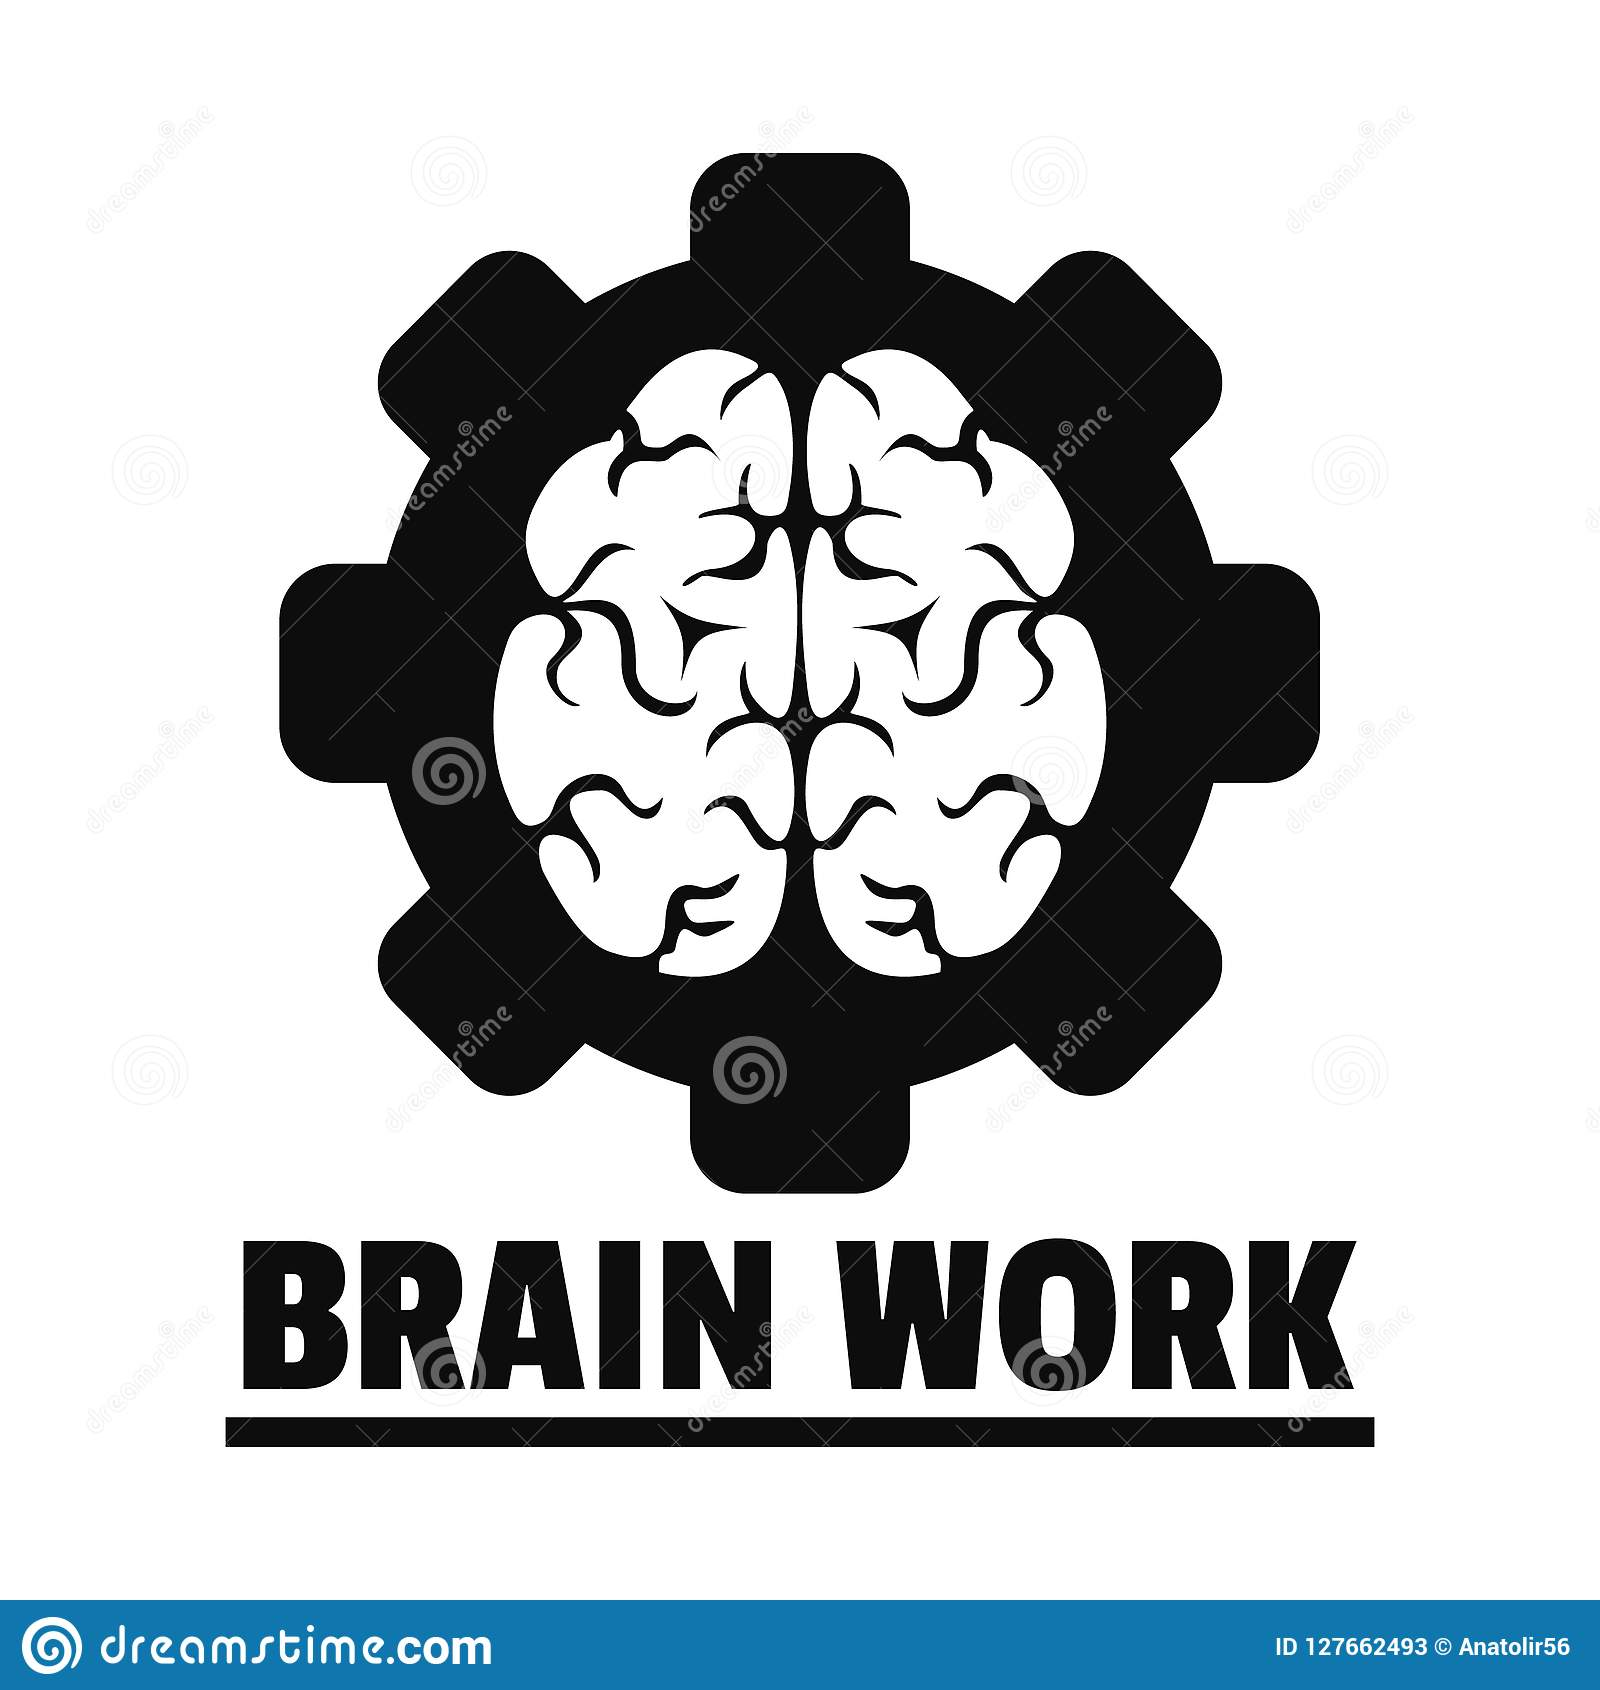 Logic brain work logo, simple style